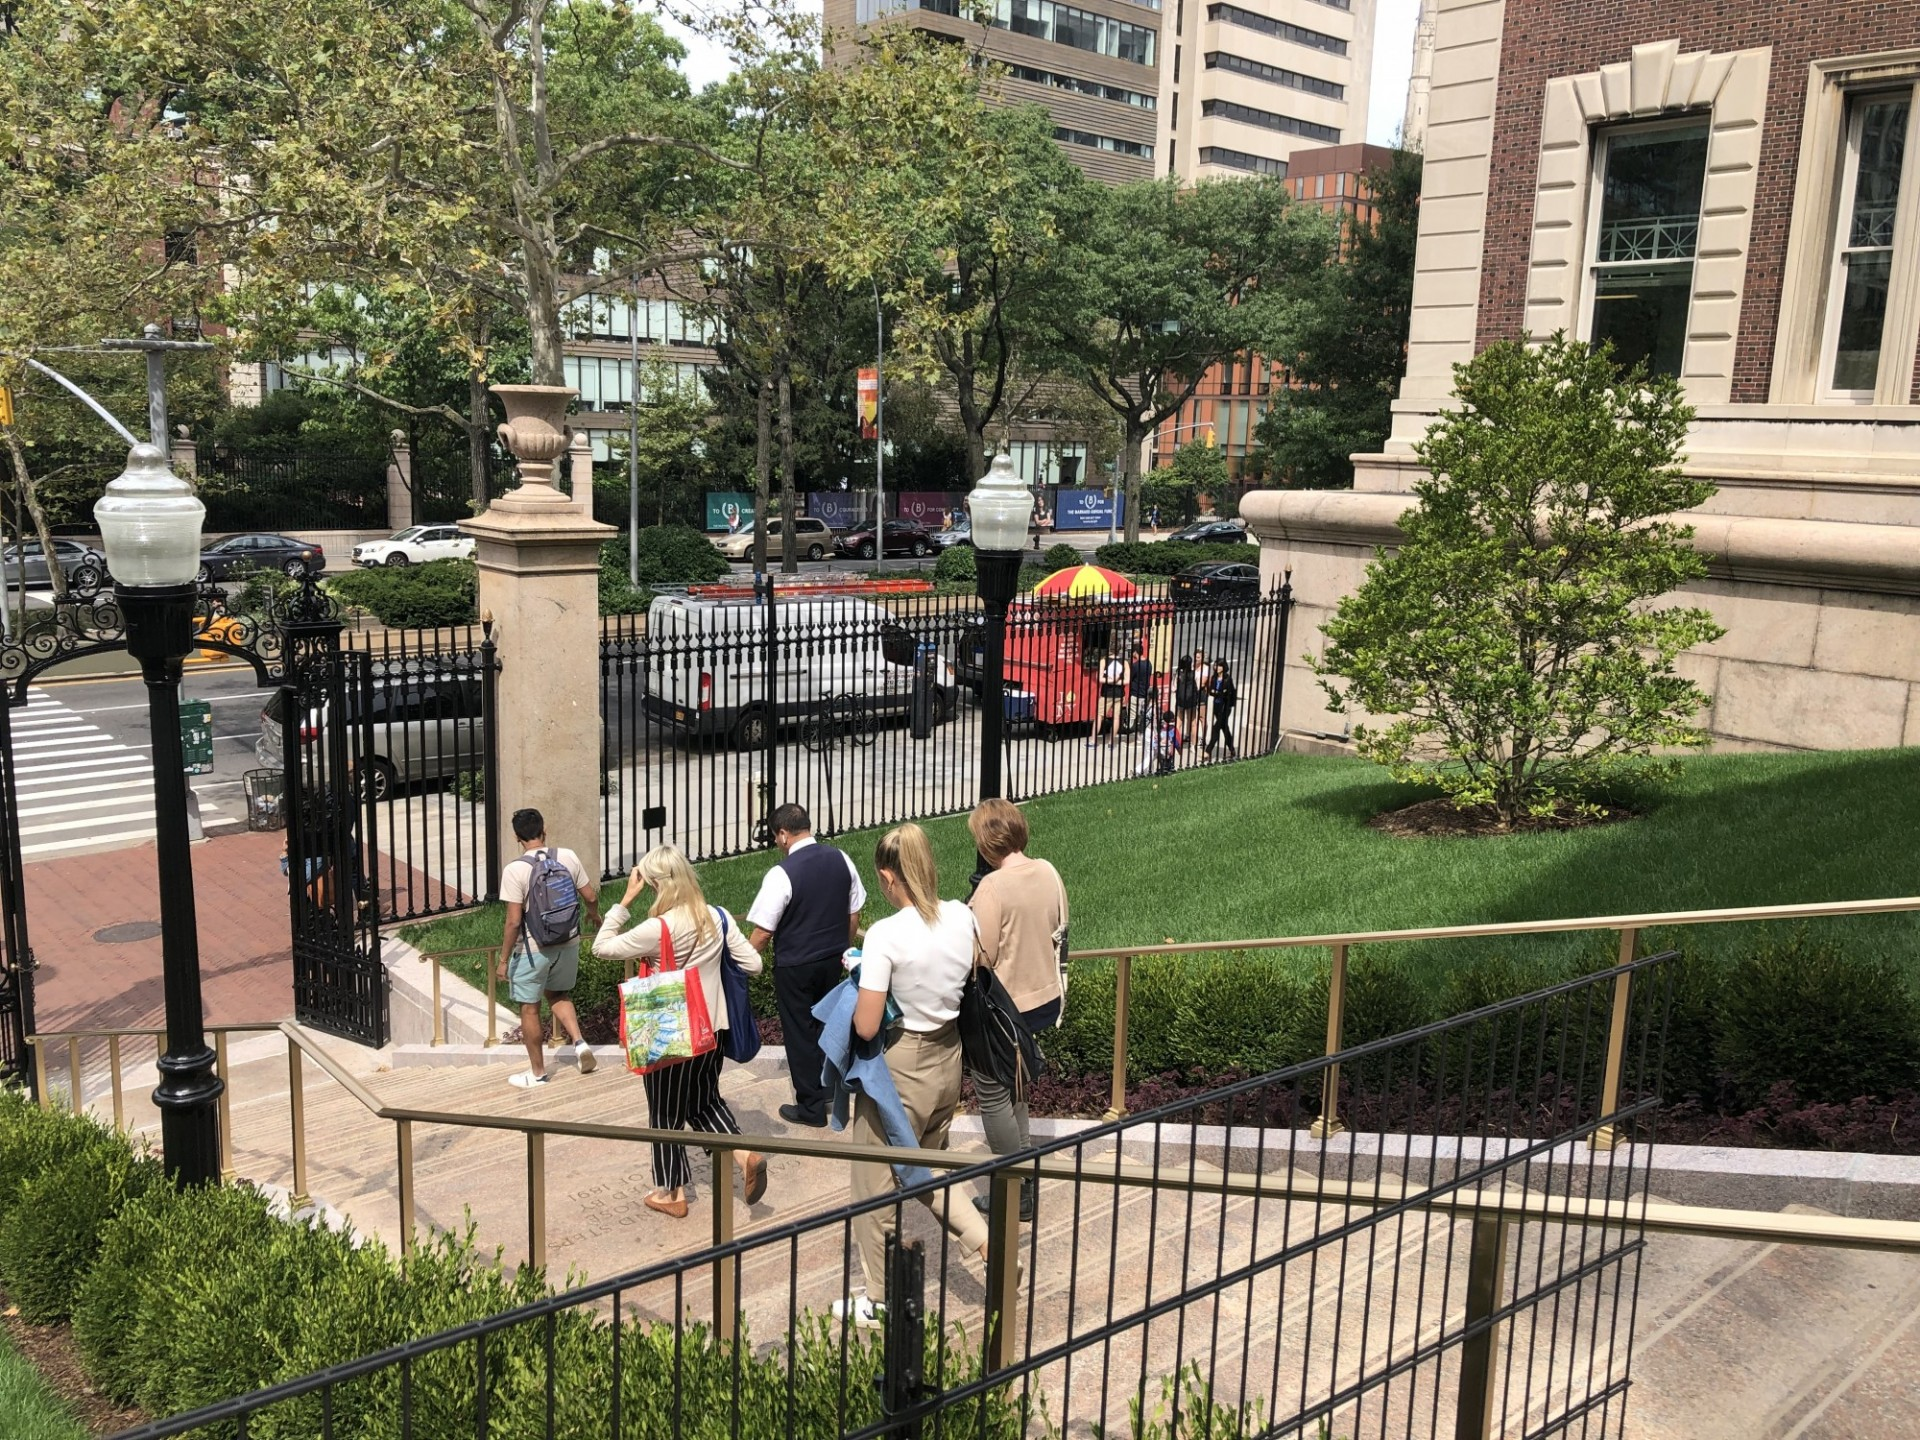 People walking down Earl Hall Gate stairs, which was renovated with new open lawn areas.